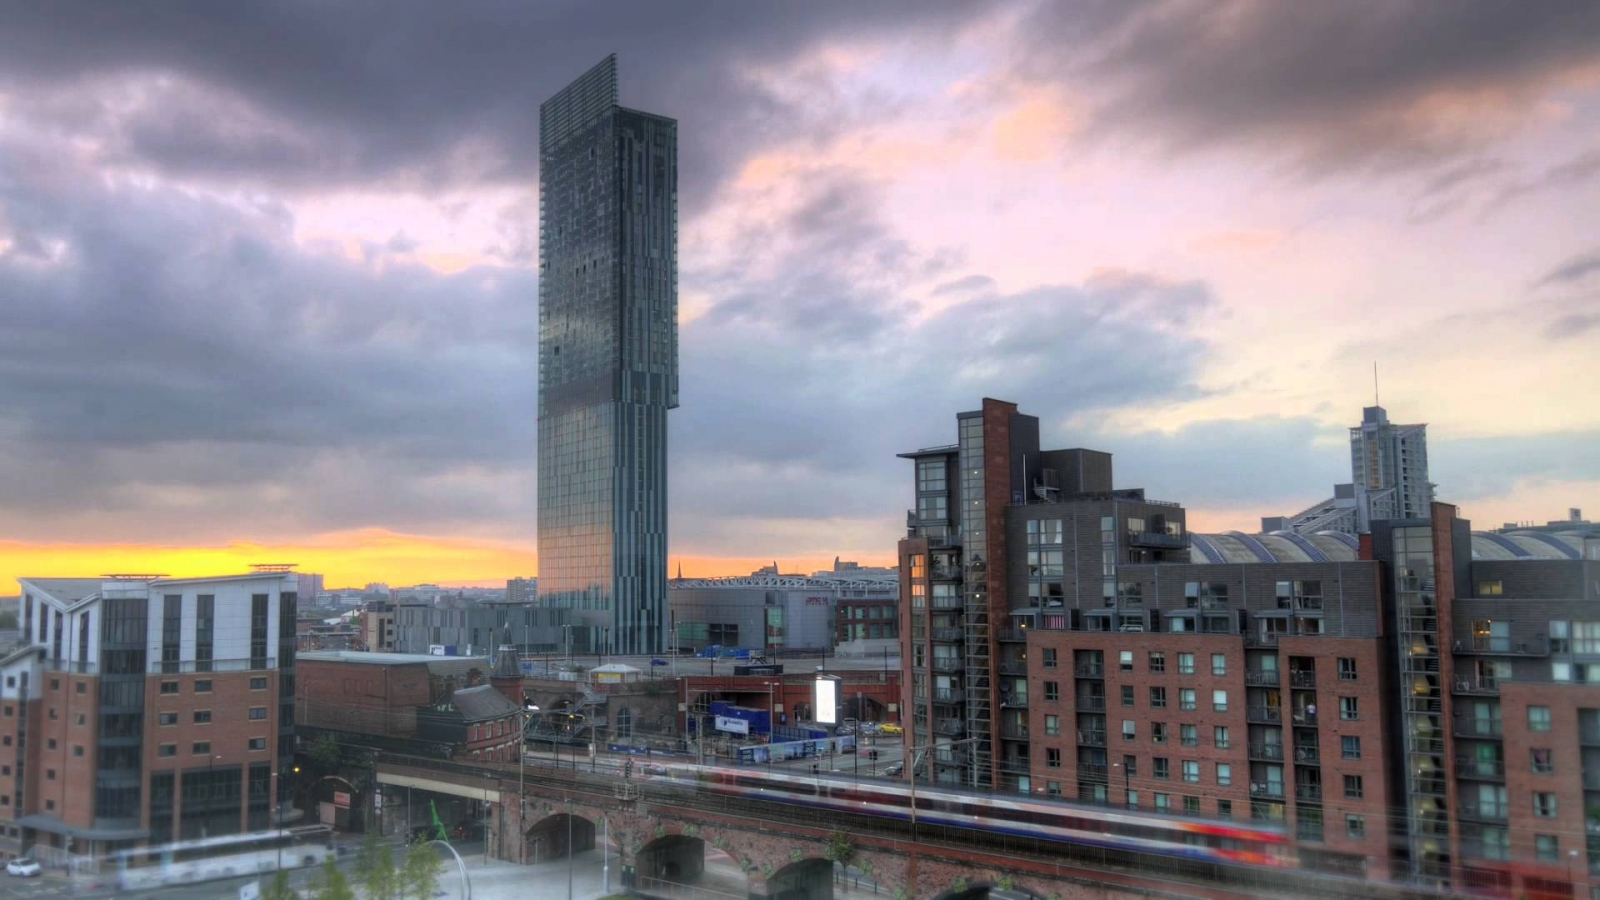 North England Economy: Has Manchester's Regeneration Survived the Financial Crisis?